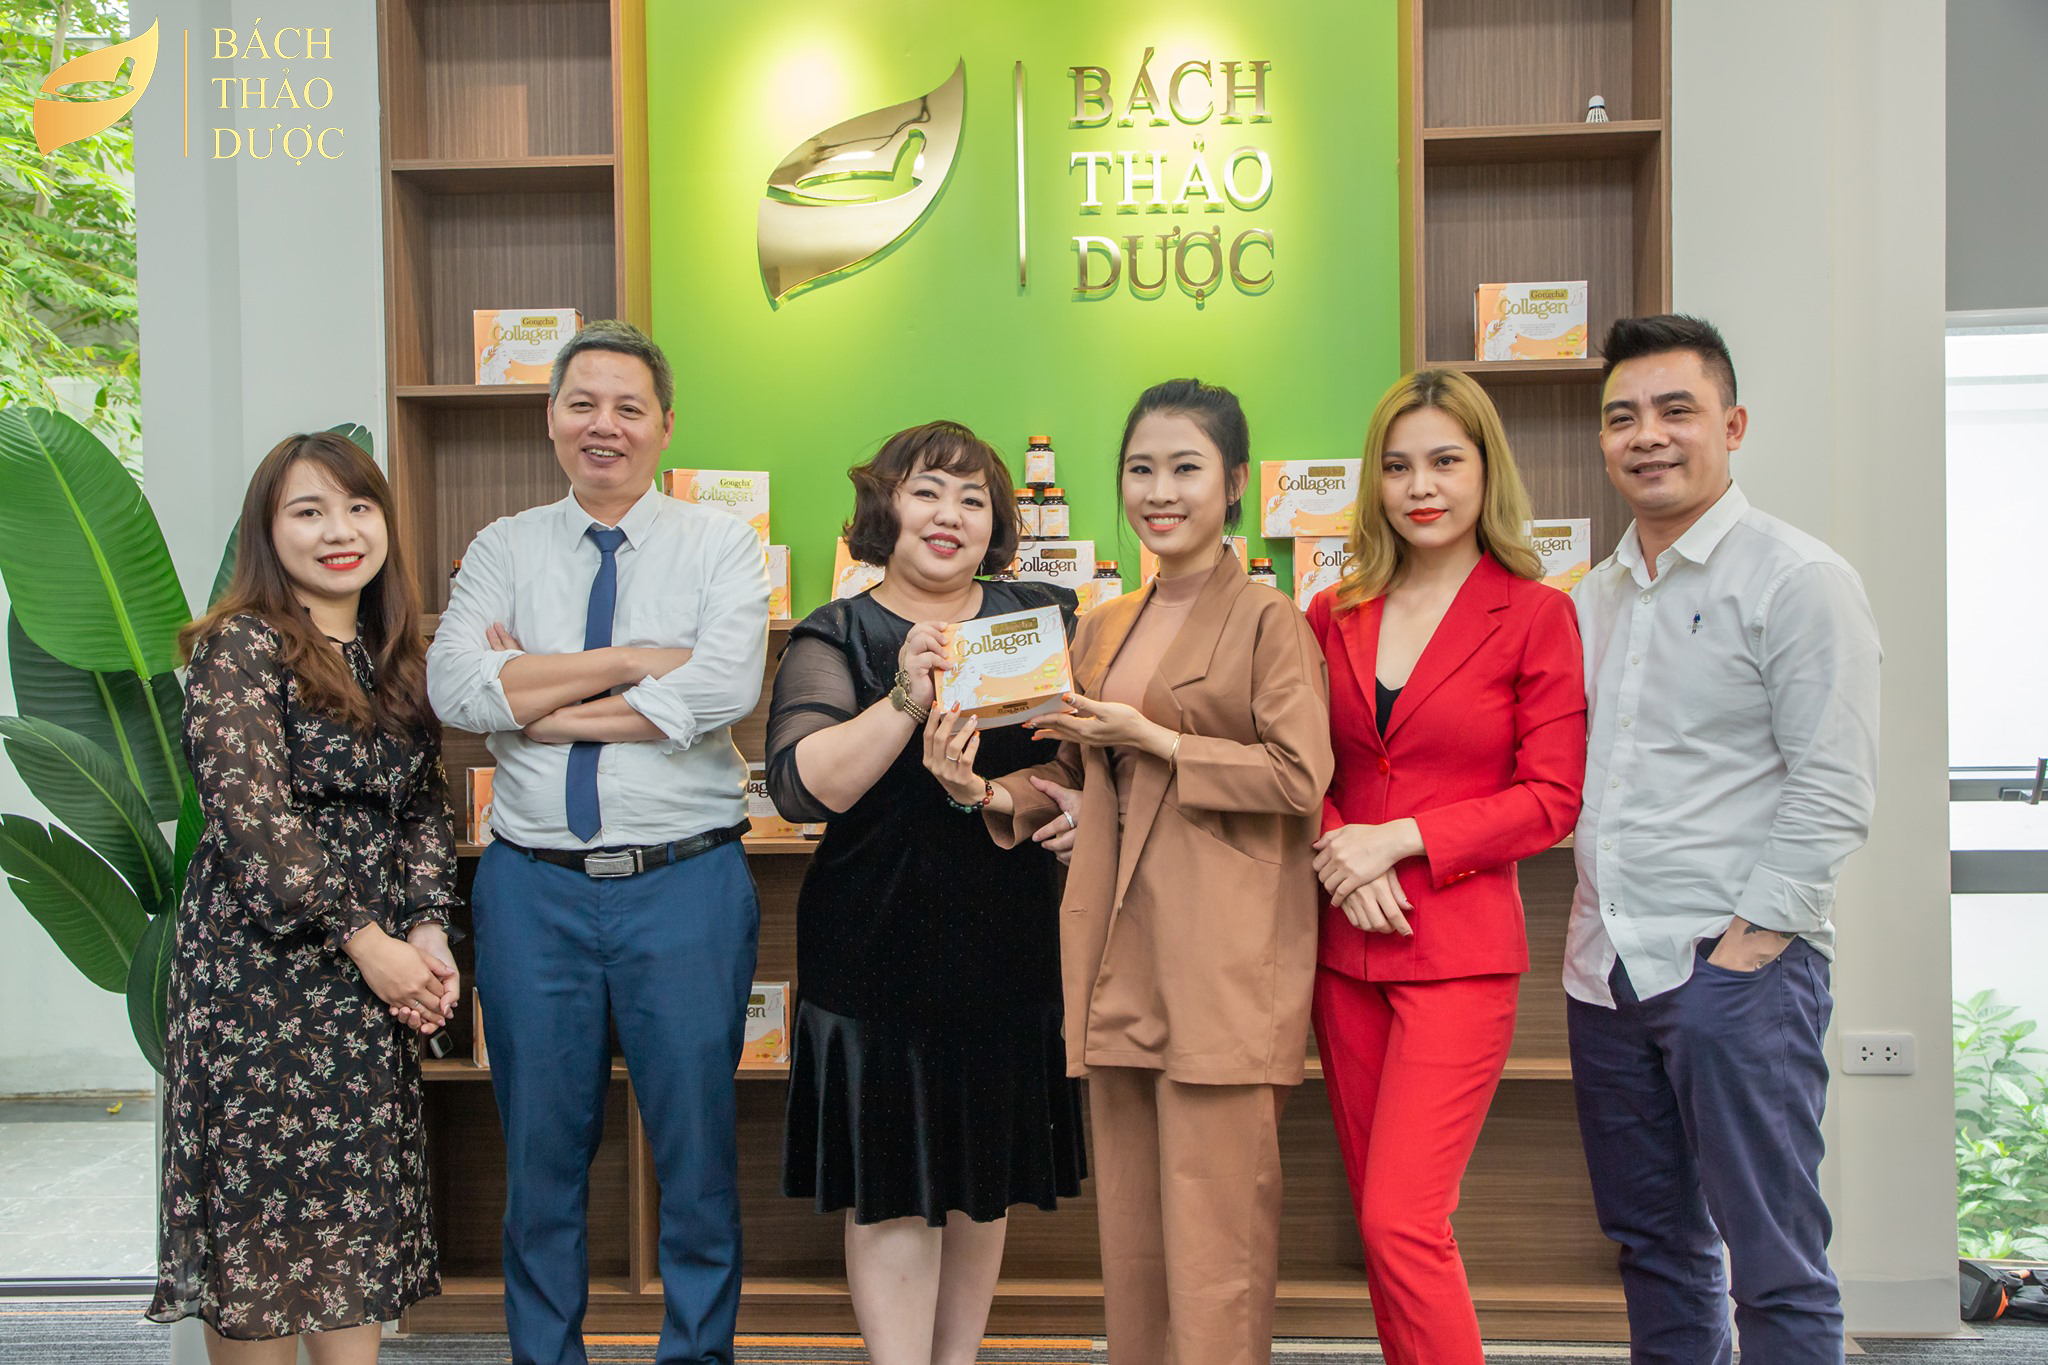 The professional training session for the partner who cooperated with Bach Thao Duoc factory was shared by Pham Van Tho doctor-Chief Executive Officer of Bach Thao Duoc factory.